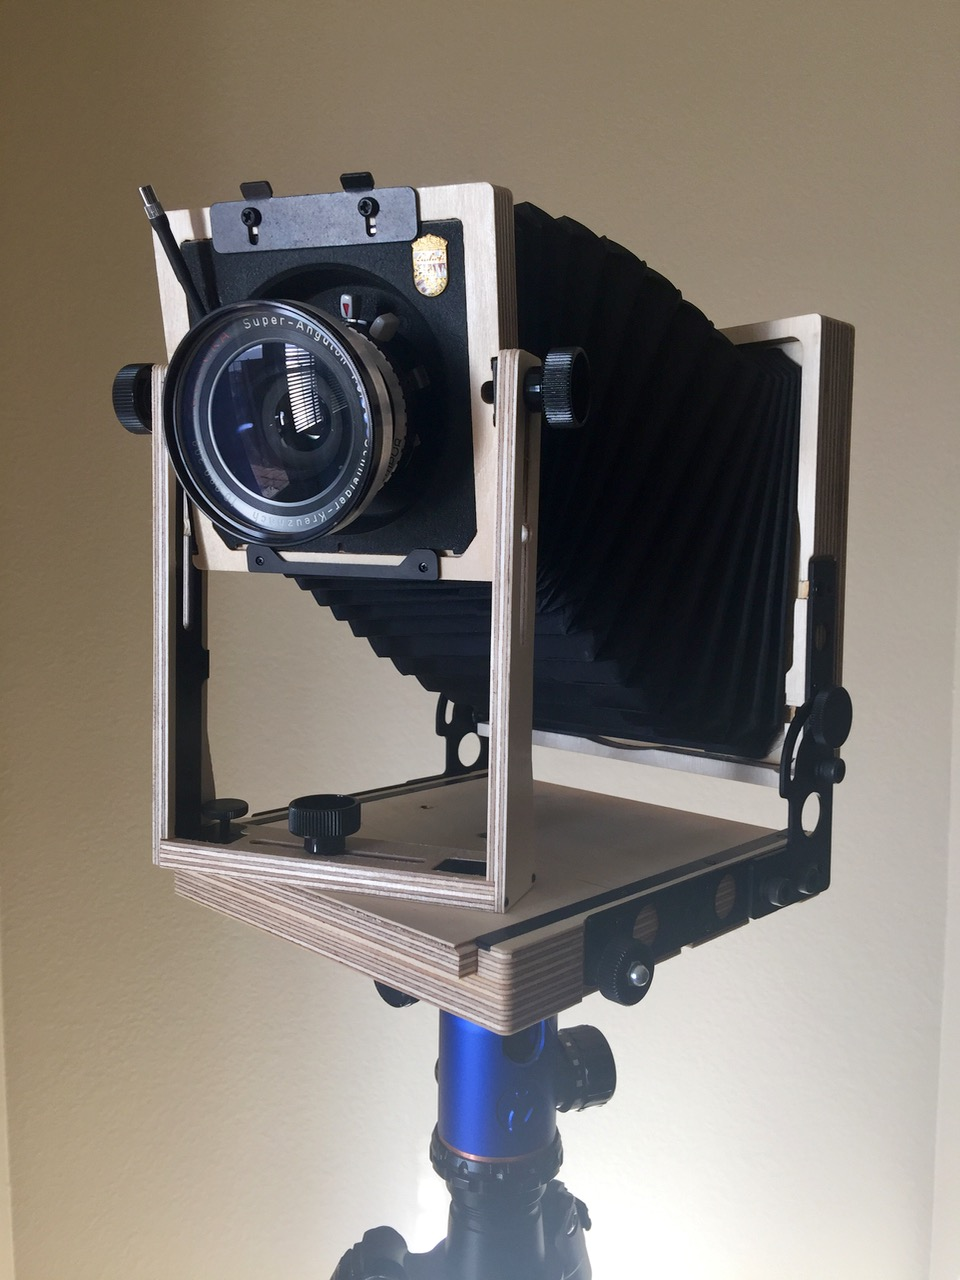 "Intrepid 4x5"" Field Camera with Schneider-Kreuznach 90mm ƒ/8 Super-Angulon lens mounted on the front standard. This camera was made by hand specifically for me at a small workshop in England in 2016."